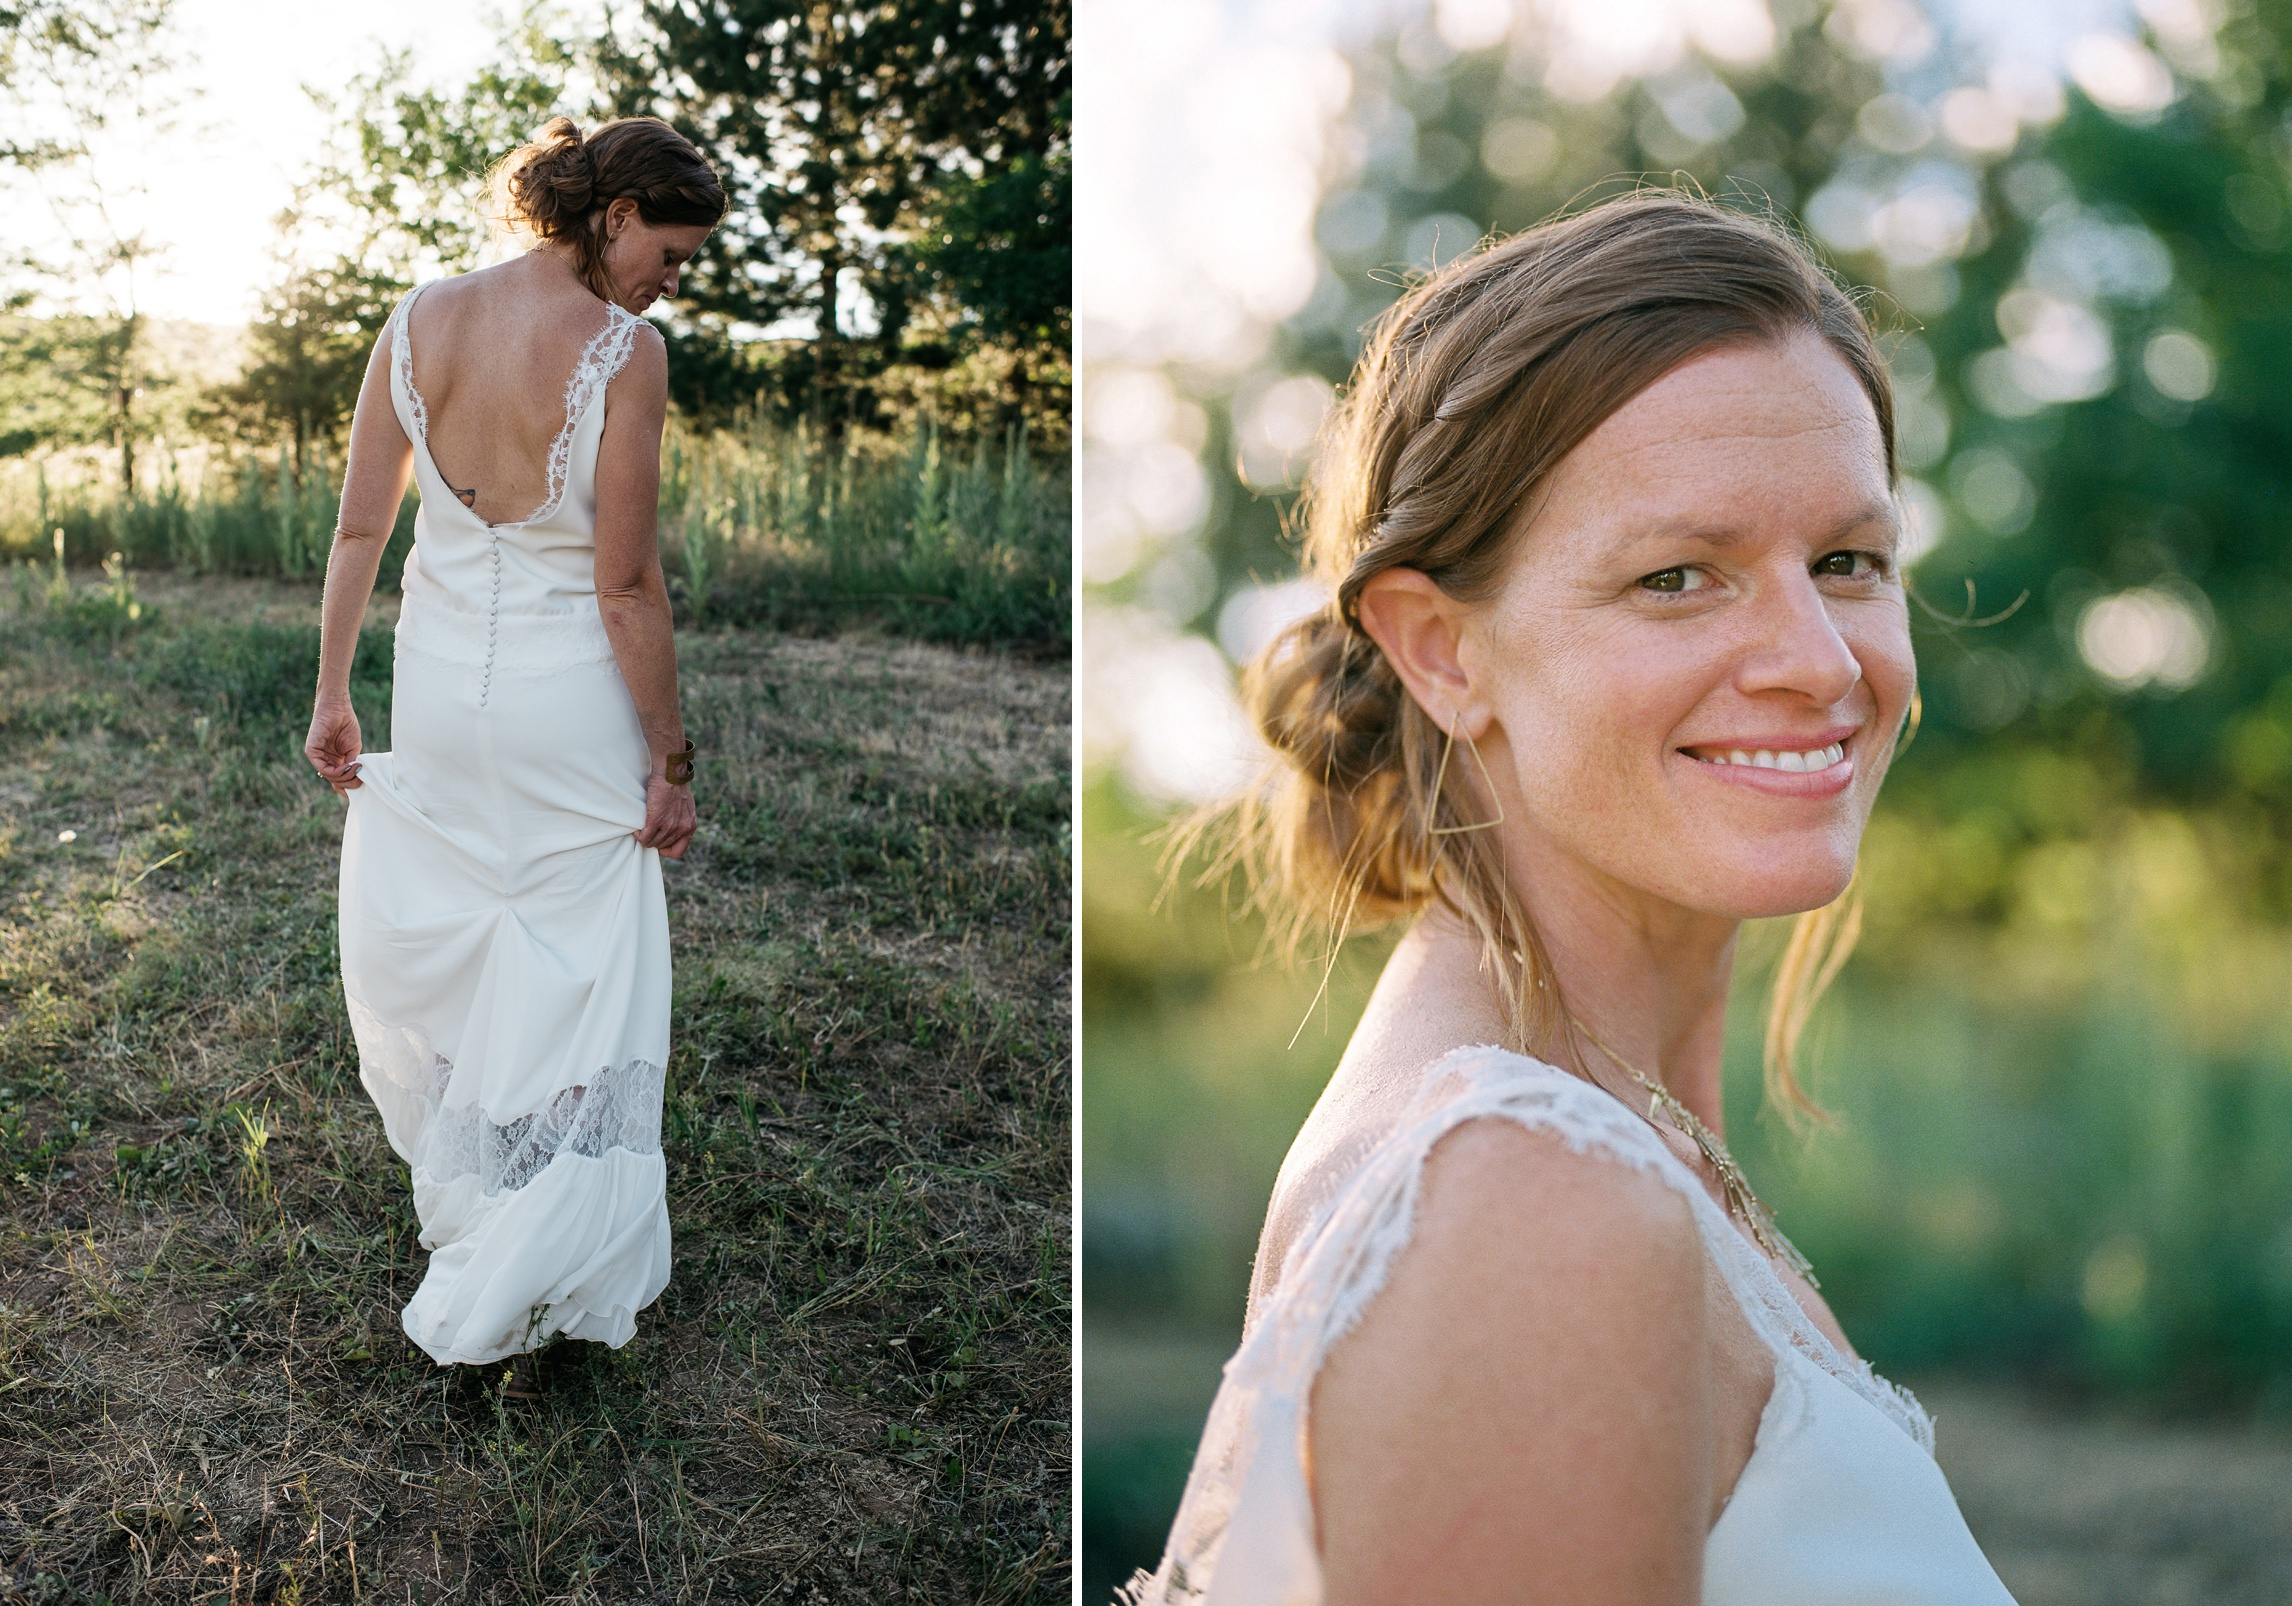 A beautiful bride on her Colorado wedding day. Wedding photography by Sonja Salzburg of Sonja K Photography.